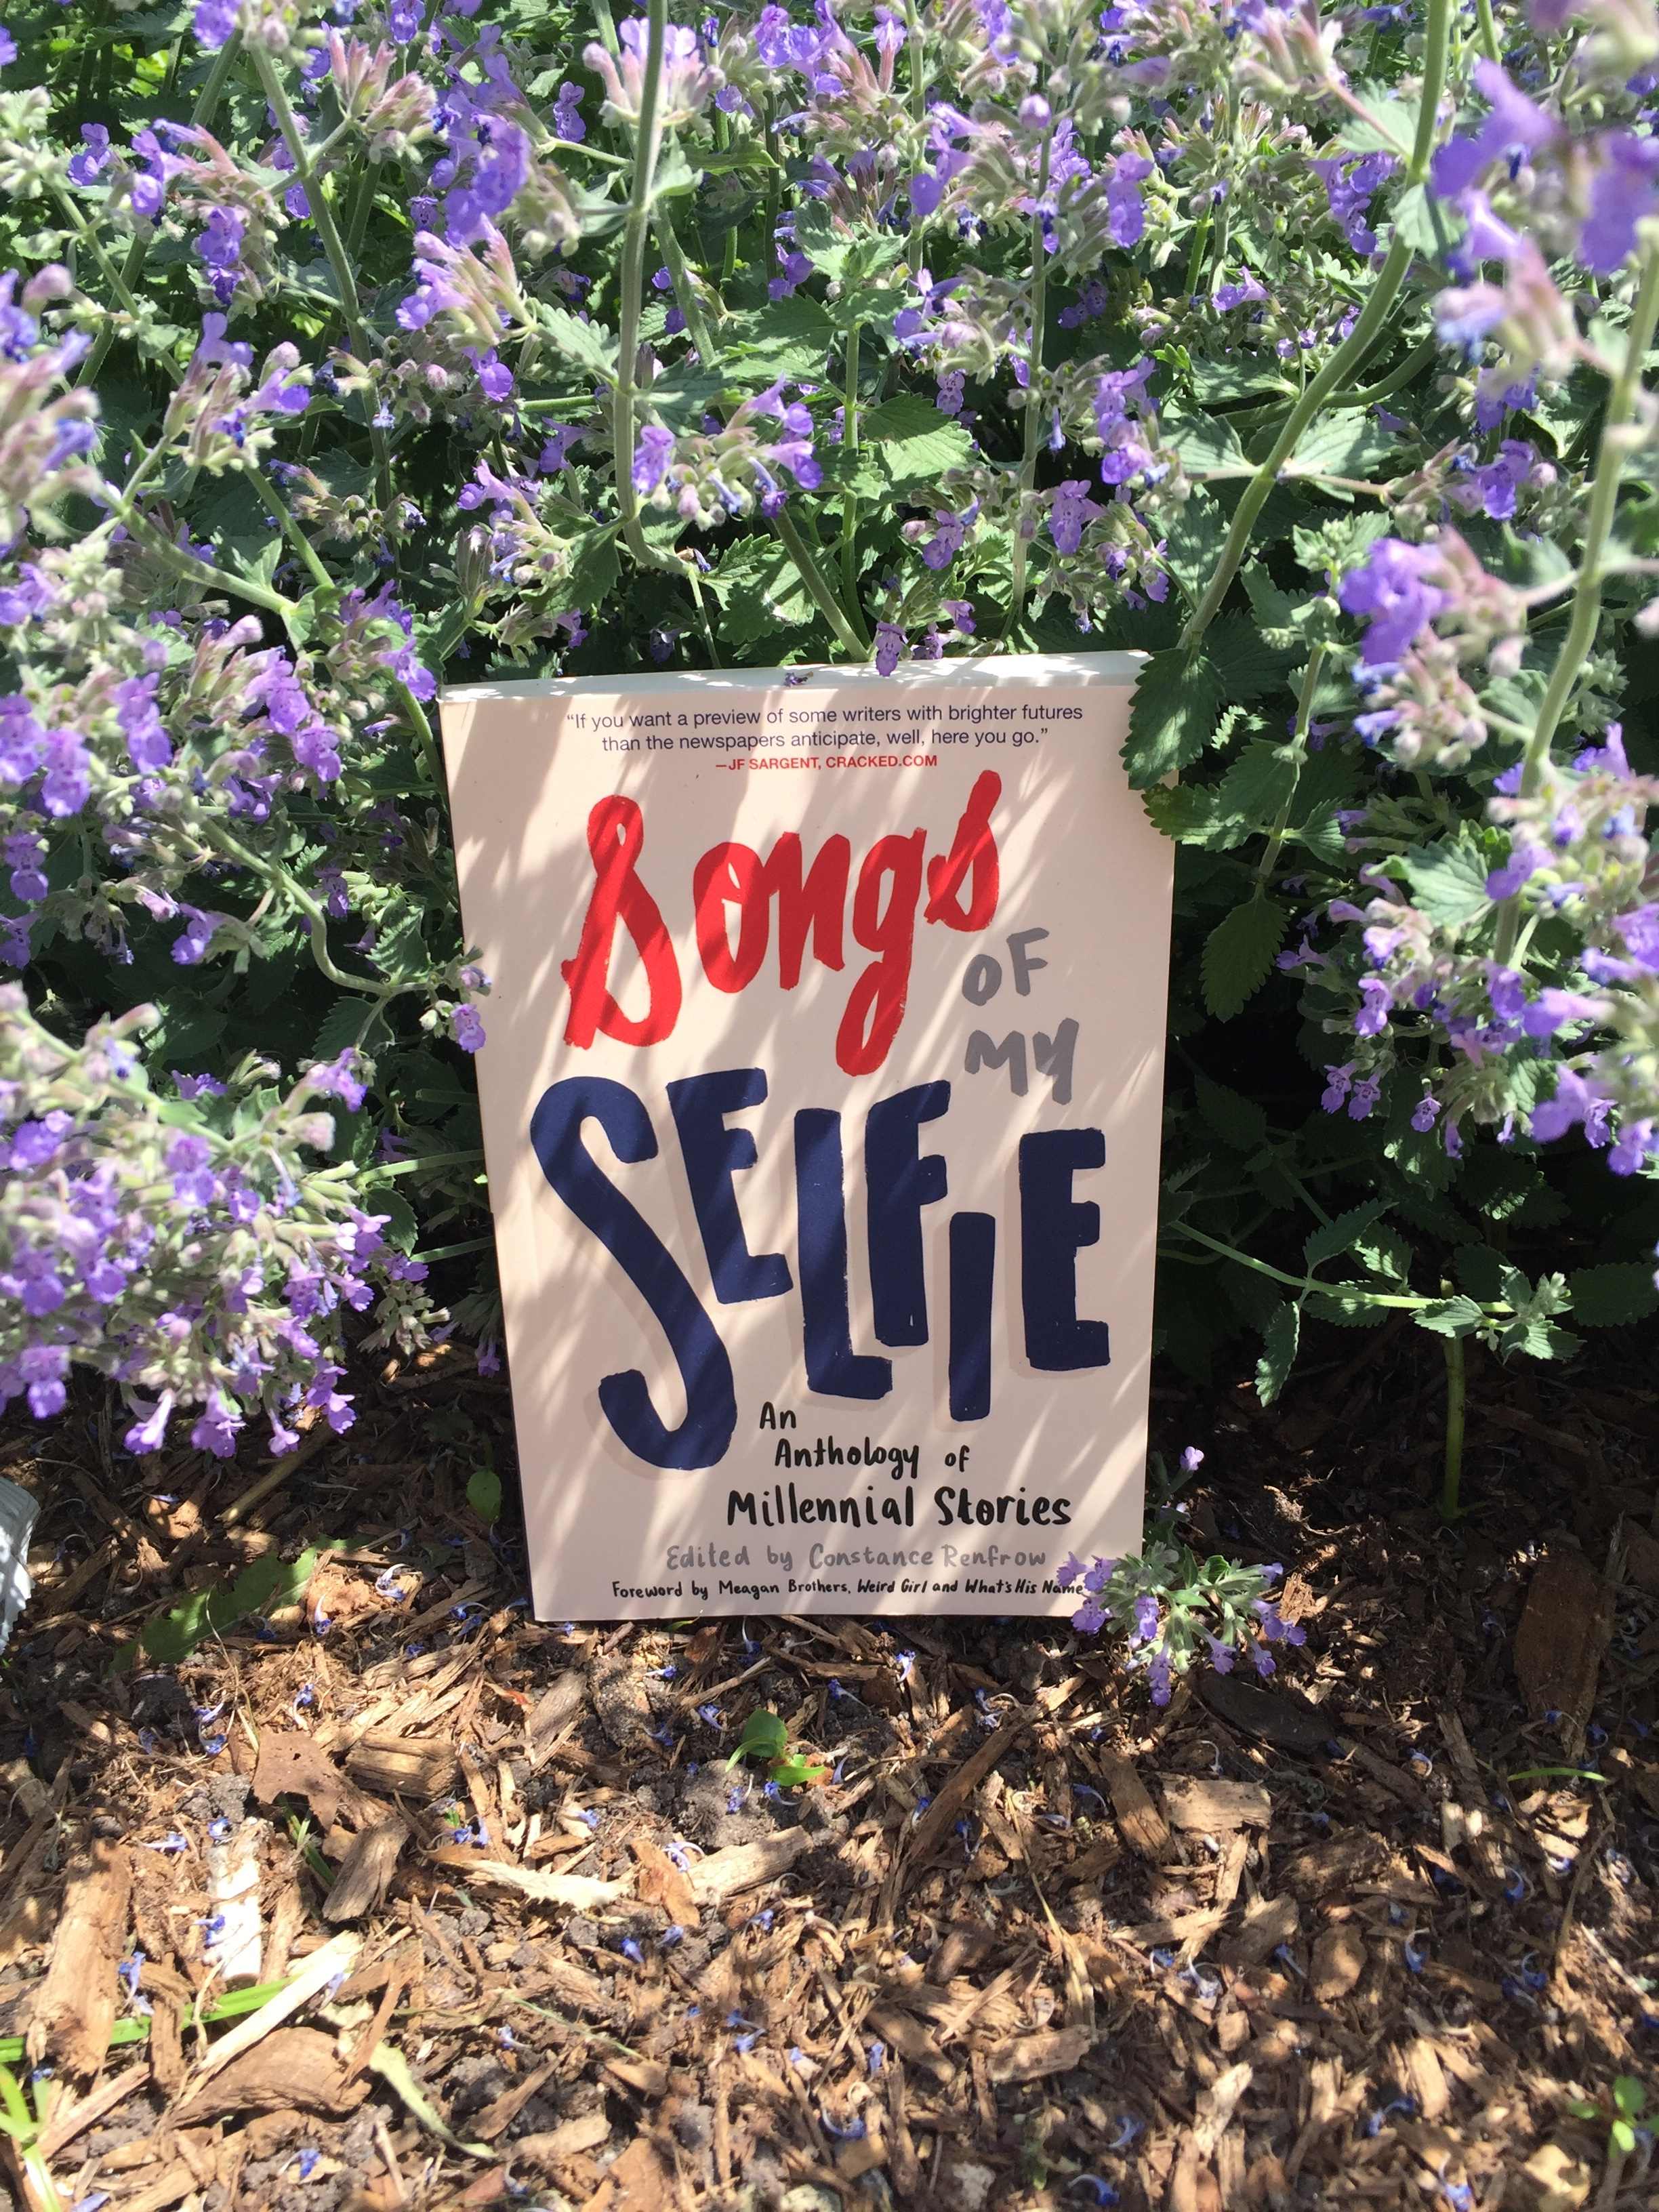 You can read Songs of My Selfie on a plane, in a train, on a beach, in the garden. . . . Endless possibilities!